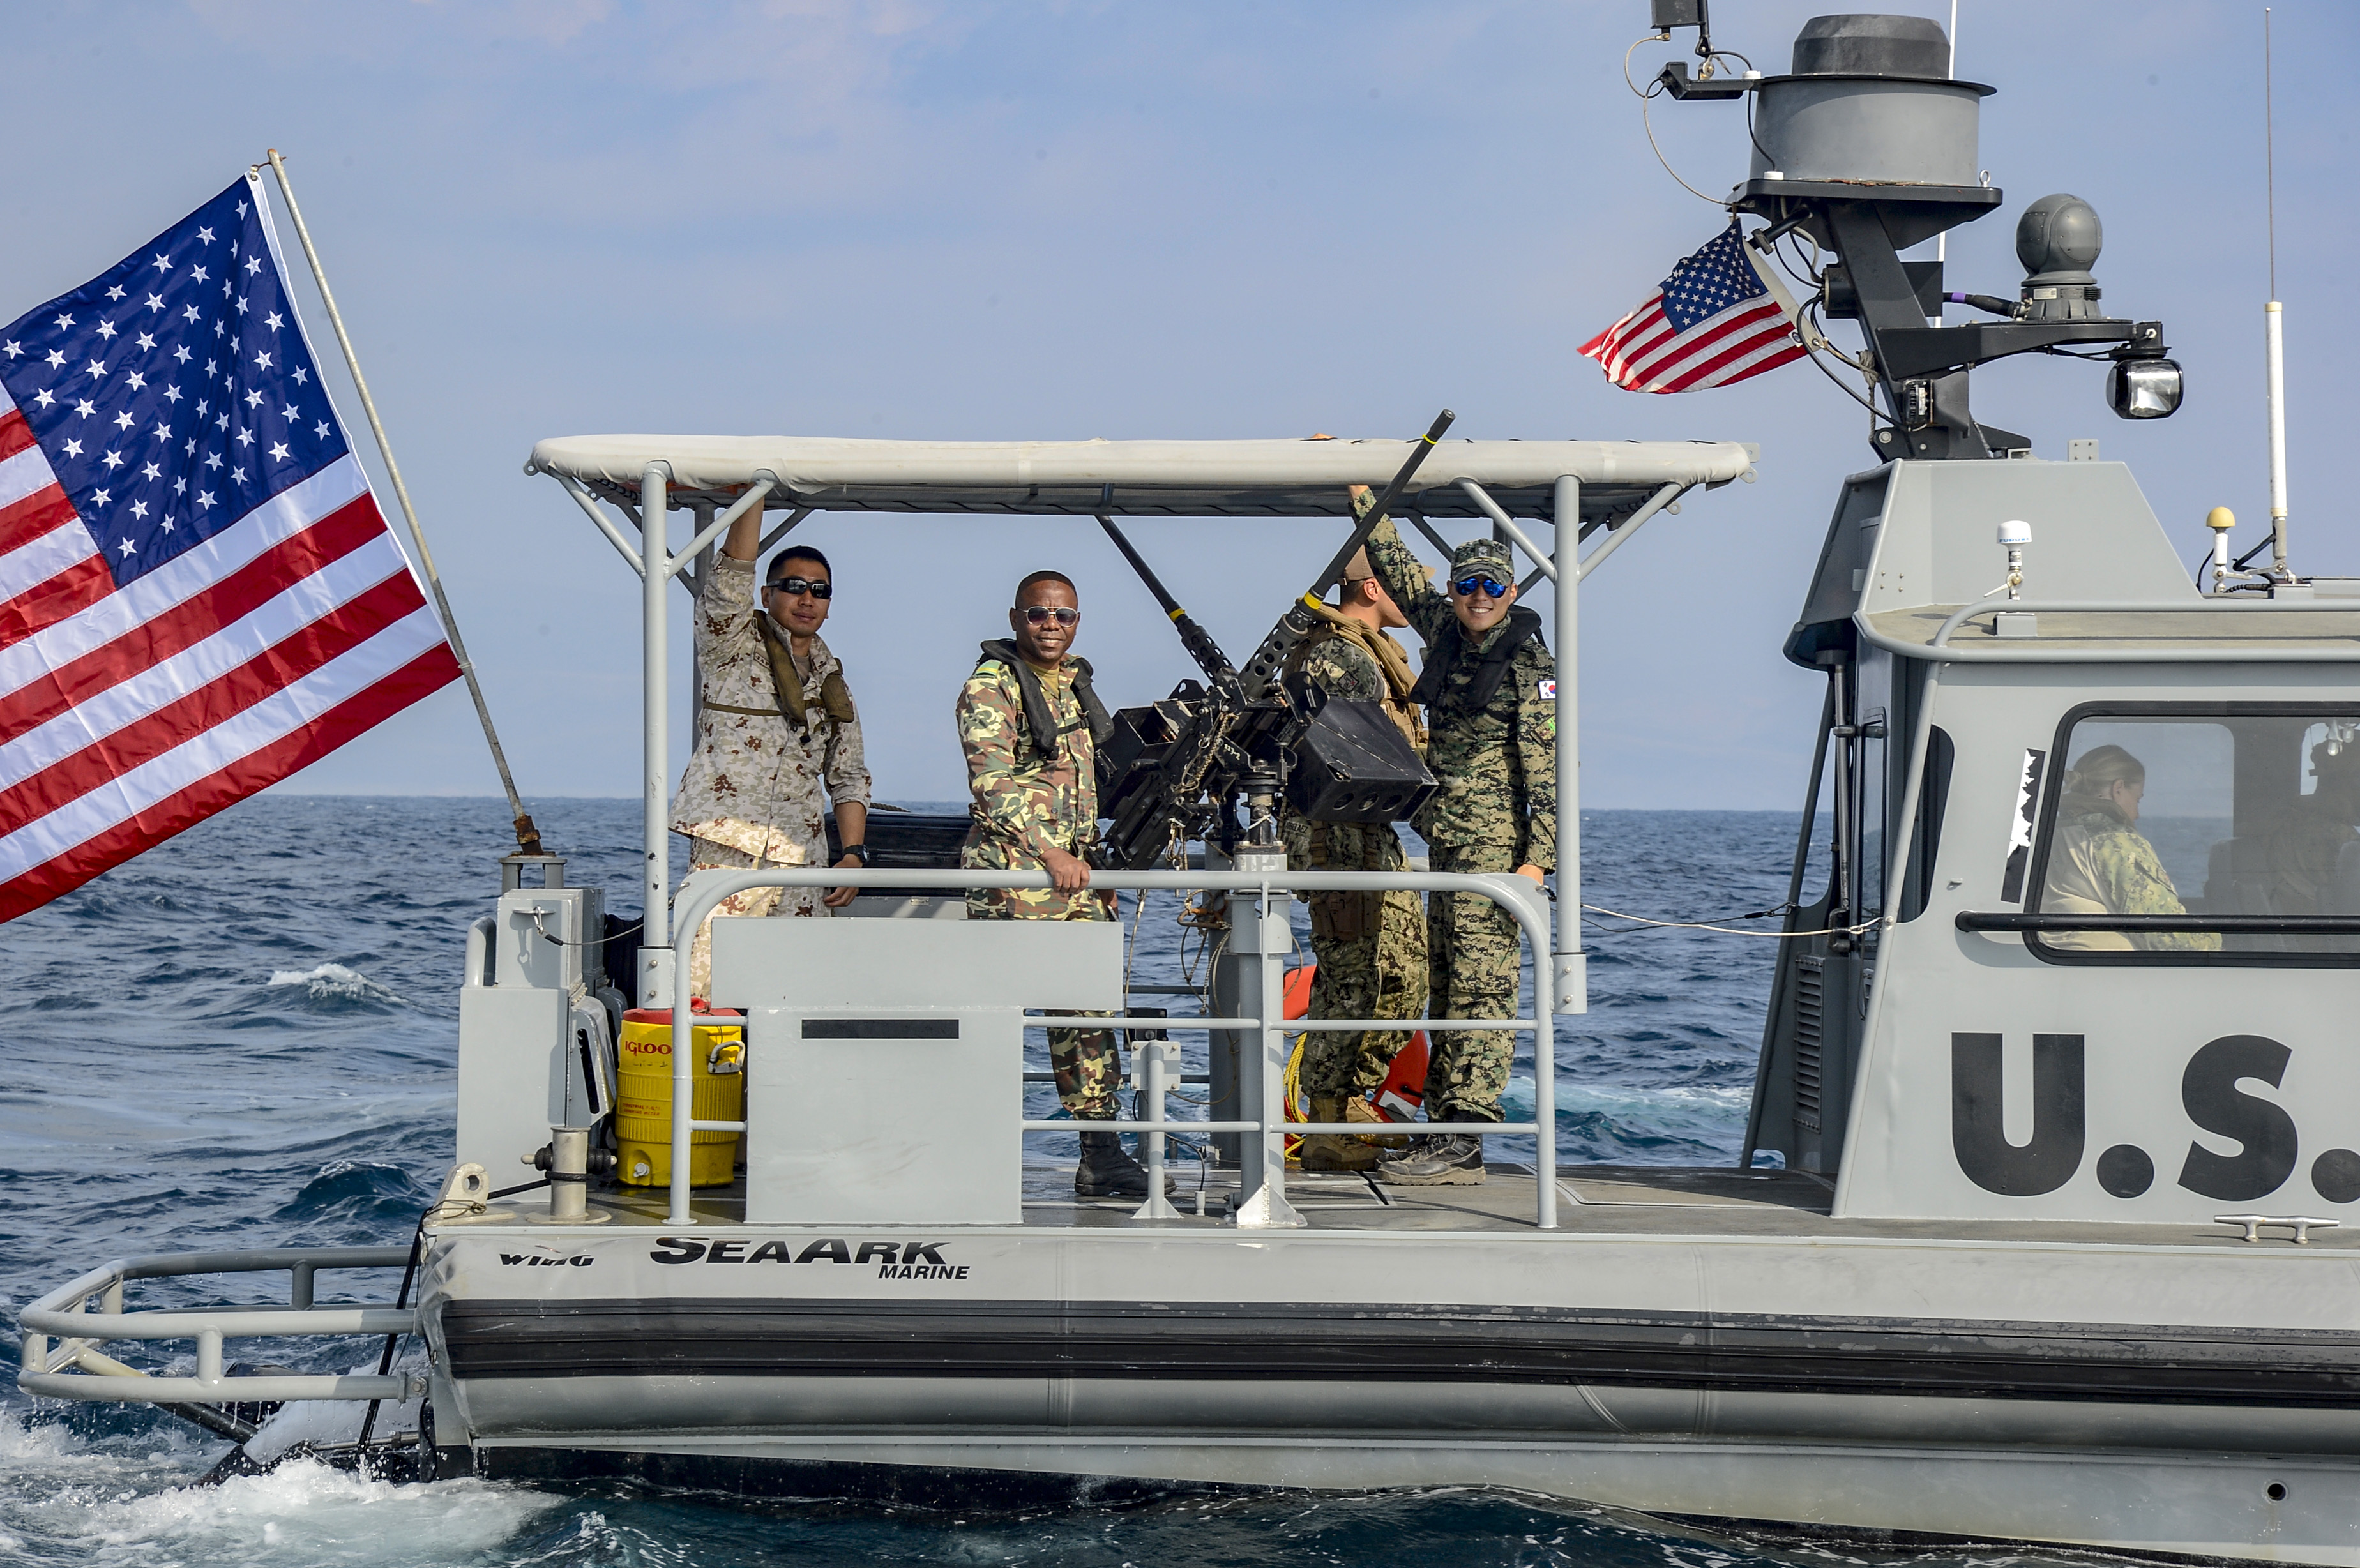 Foreign Liaison Officers (FLOs), assigned to Combined Joint Task Force-Horn of Africa (CJTF-HOA), pose for a photo during maritime security operations (MSO) with Coastal Riverine Squadron (CRS) 8 in the Gulf of Tadjourah, Oct. 23, 2018. CJTF-HOA FLOs observed the operations to better understand MSO and the CRS-8 mission. (U.S. Navy photo by Mass Communication Specialist 2nd Class Timothy M. Ahearn)